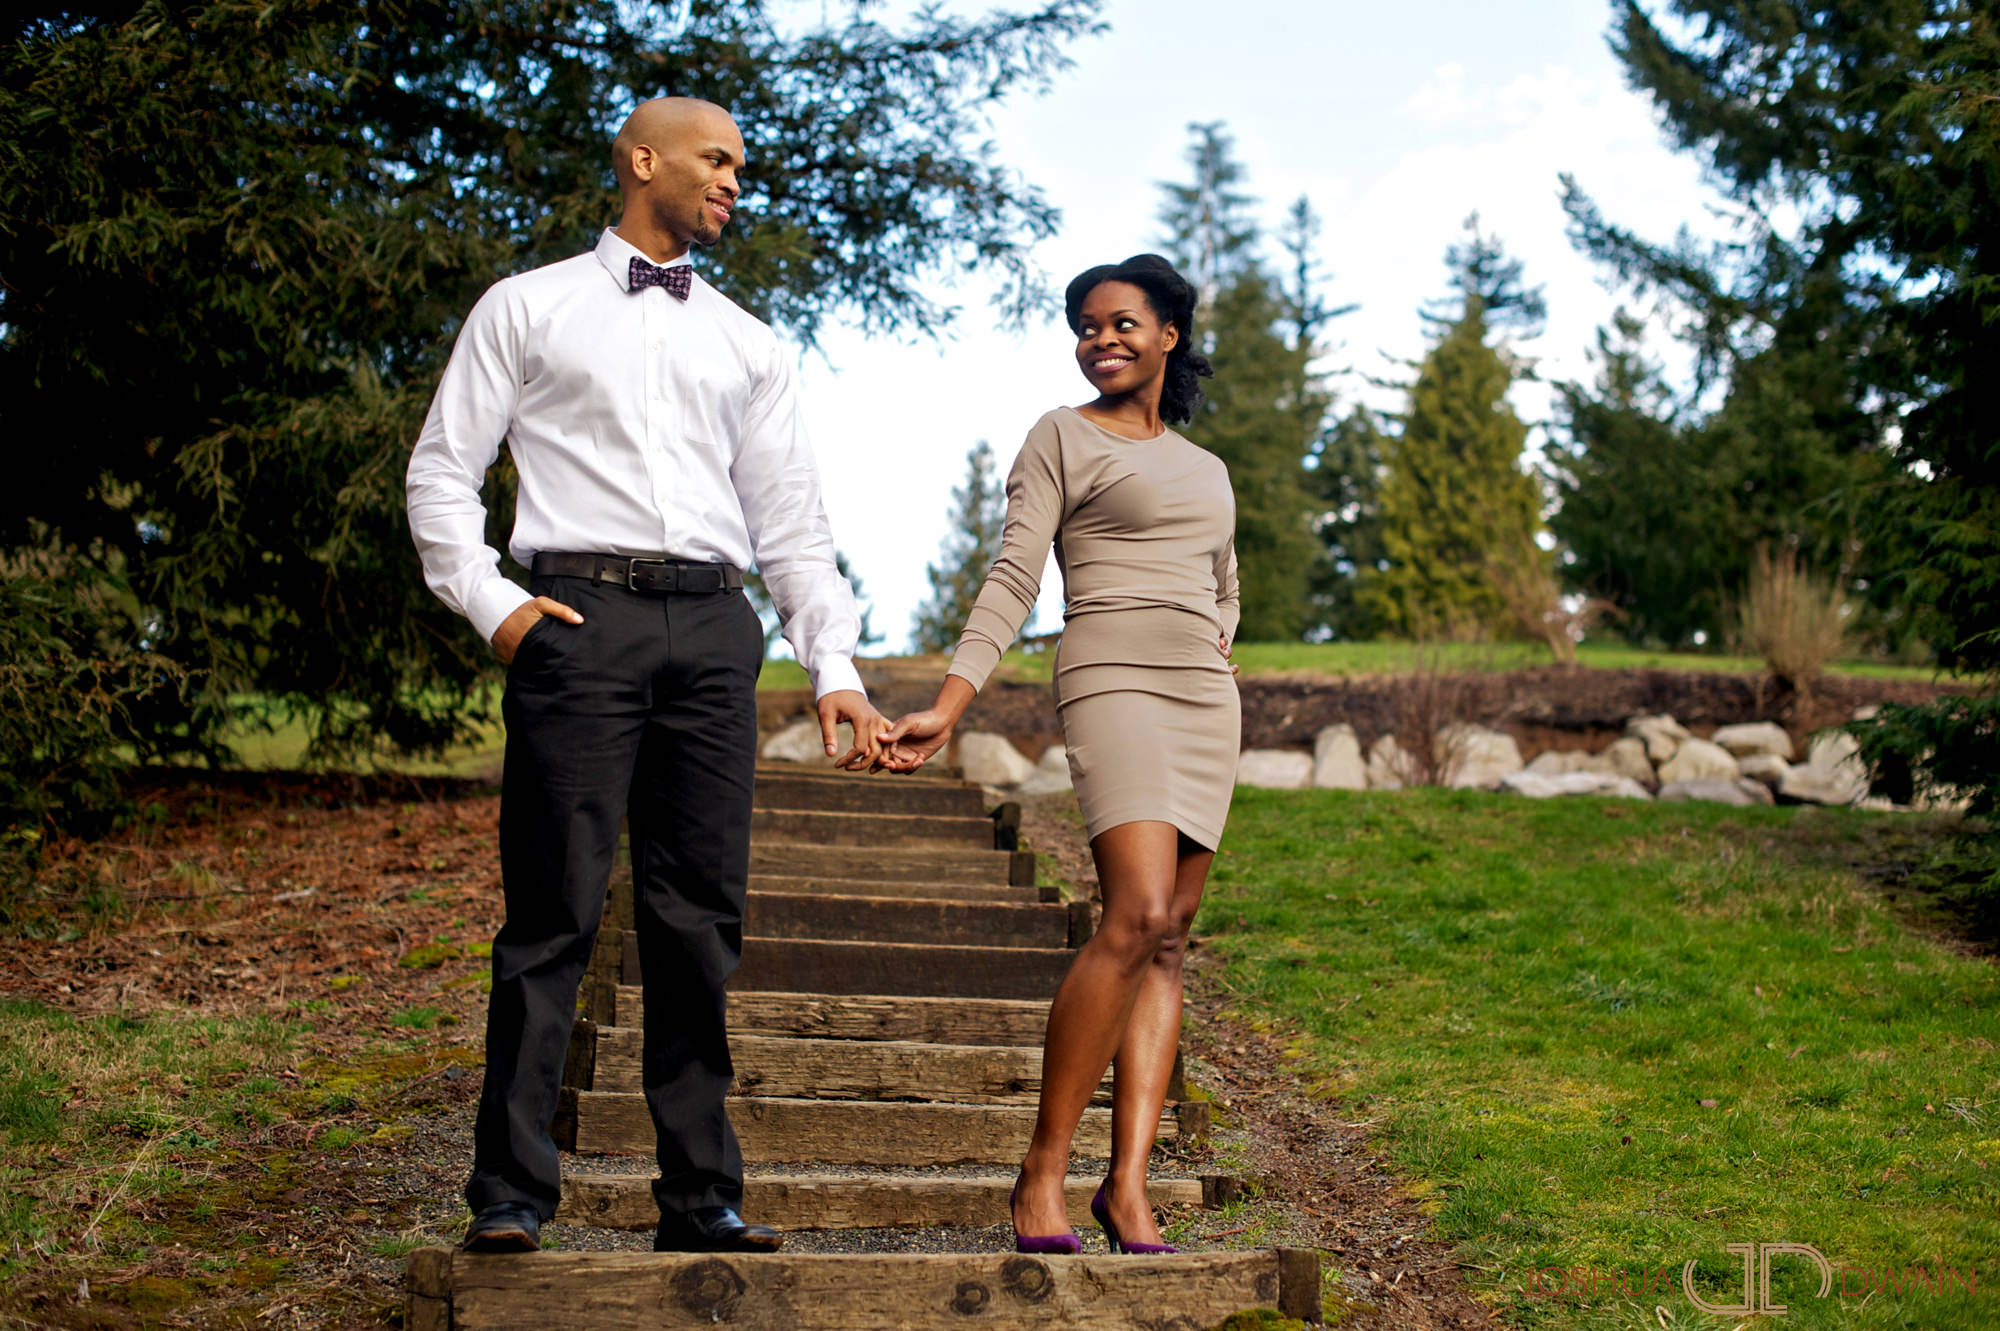 marnel-matthew--014-portland-oregon-engagement-photographer-joshua-dwain-20110305_mm_296